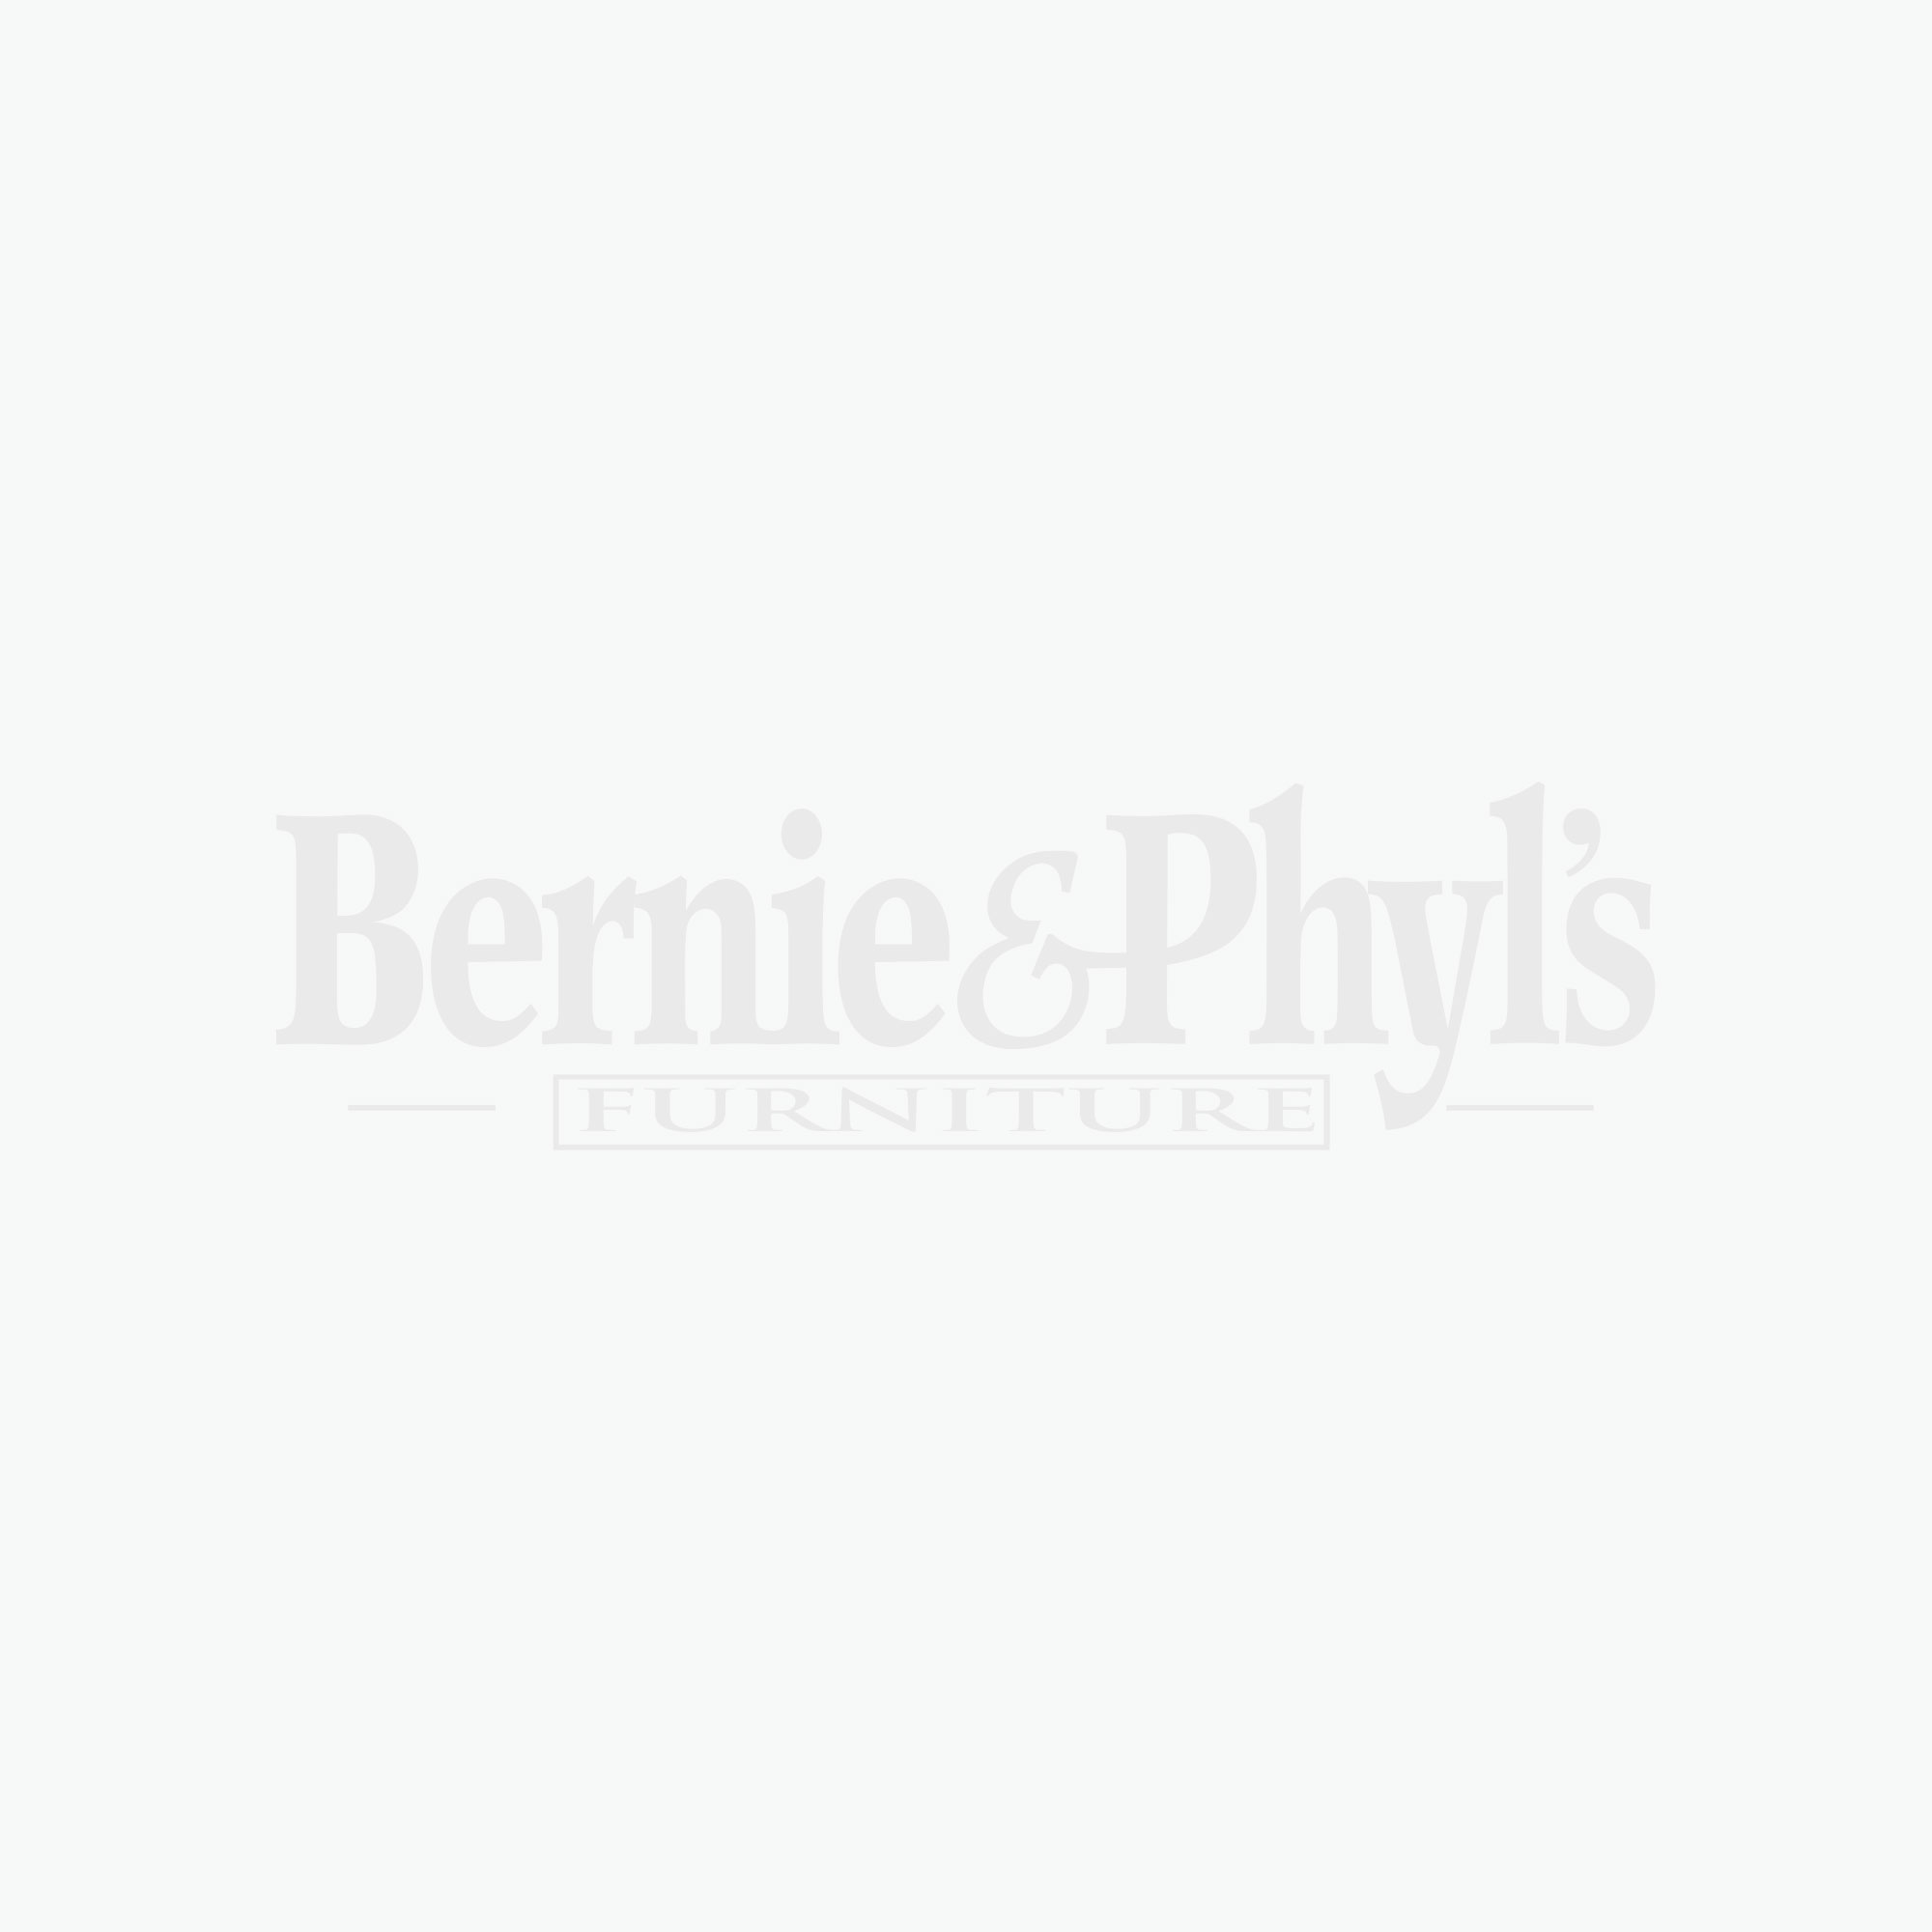 Picture of: Lettner Twin Full Bunk Bed Bernie Phyl S Furniture By Ashley Furniture